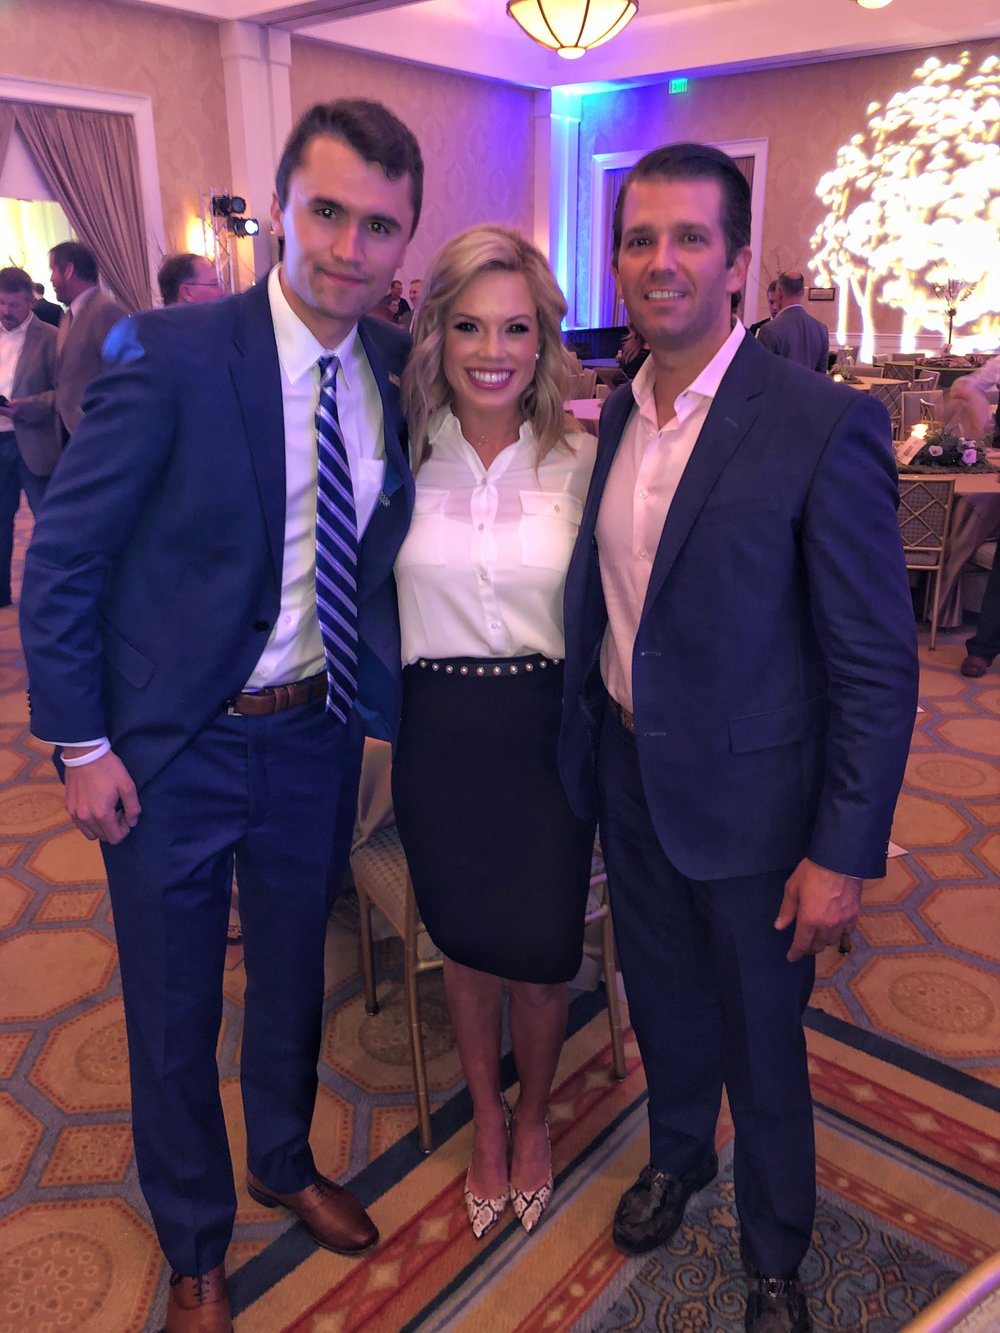 Charlie Kirk Founder of TPUSA- Left . Me- Center. Donald Trump Jr.- Right, huge supporter of TPUSA.